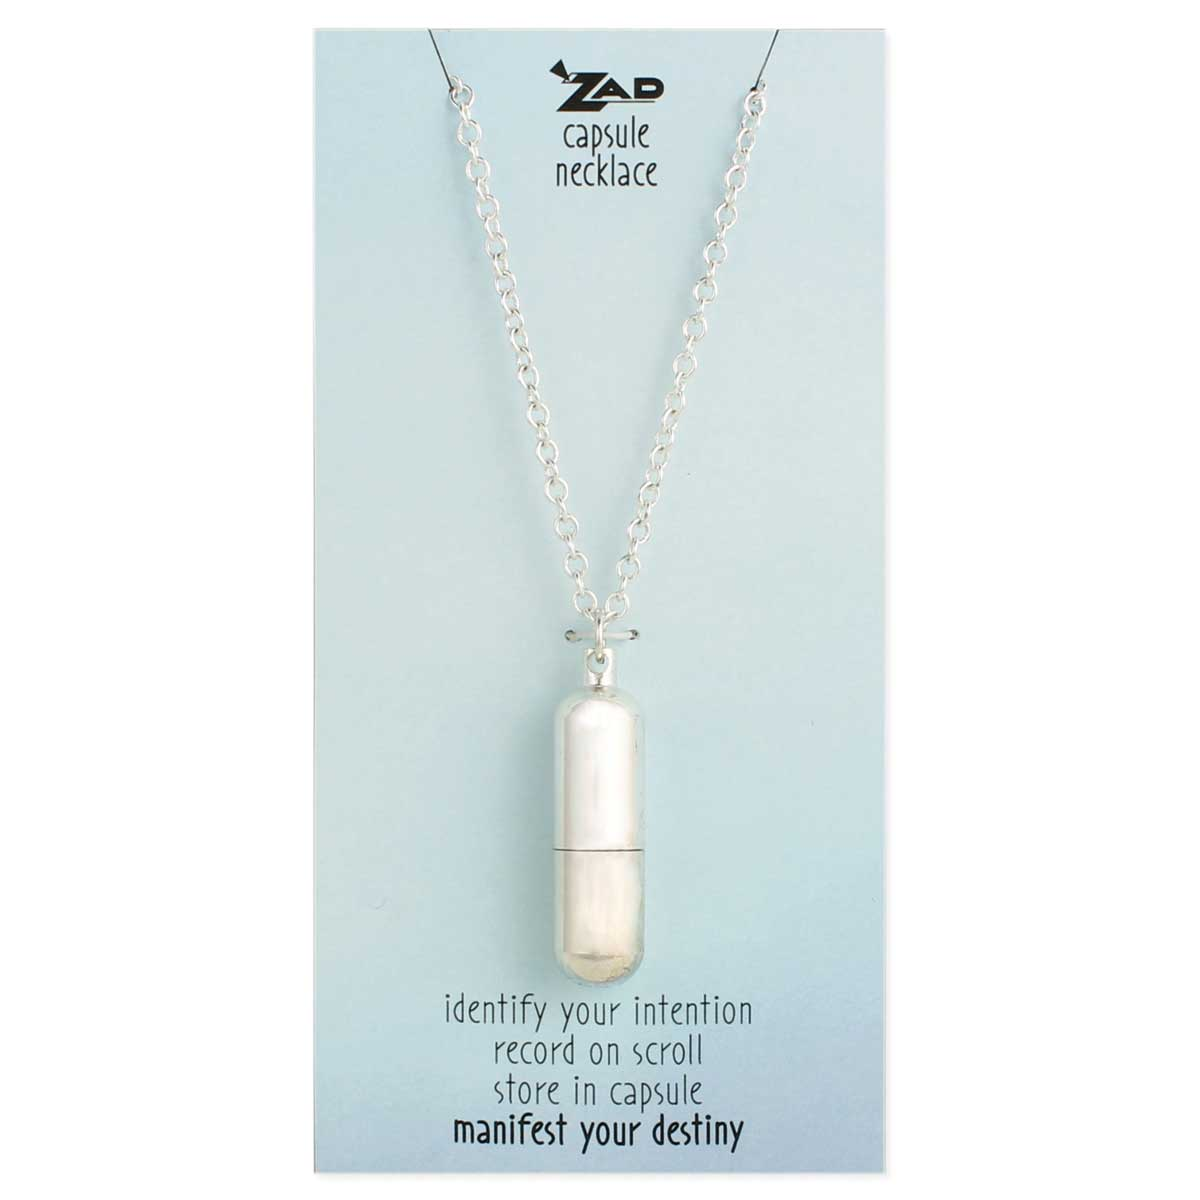 Zad Wholesale Jewelry Silver Wish Capsule Necklace